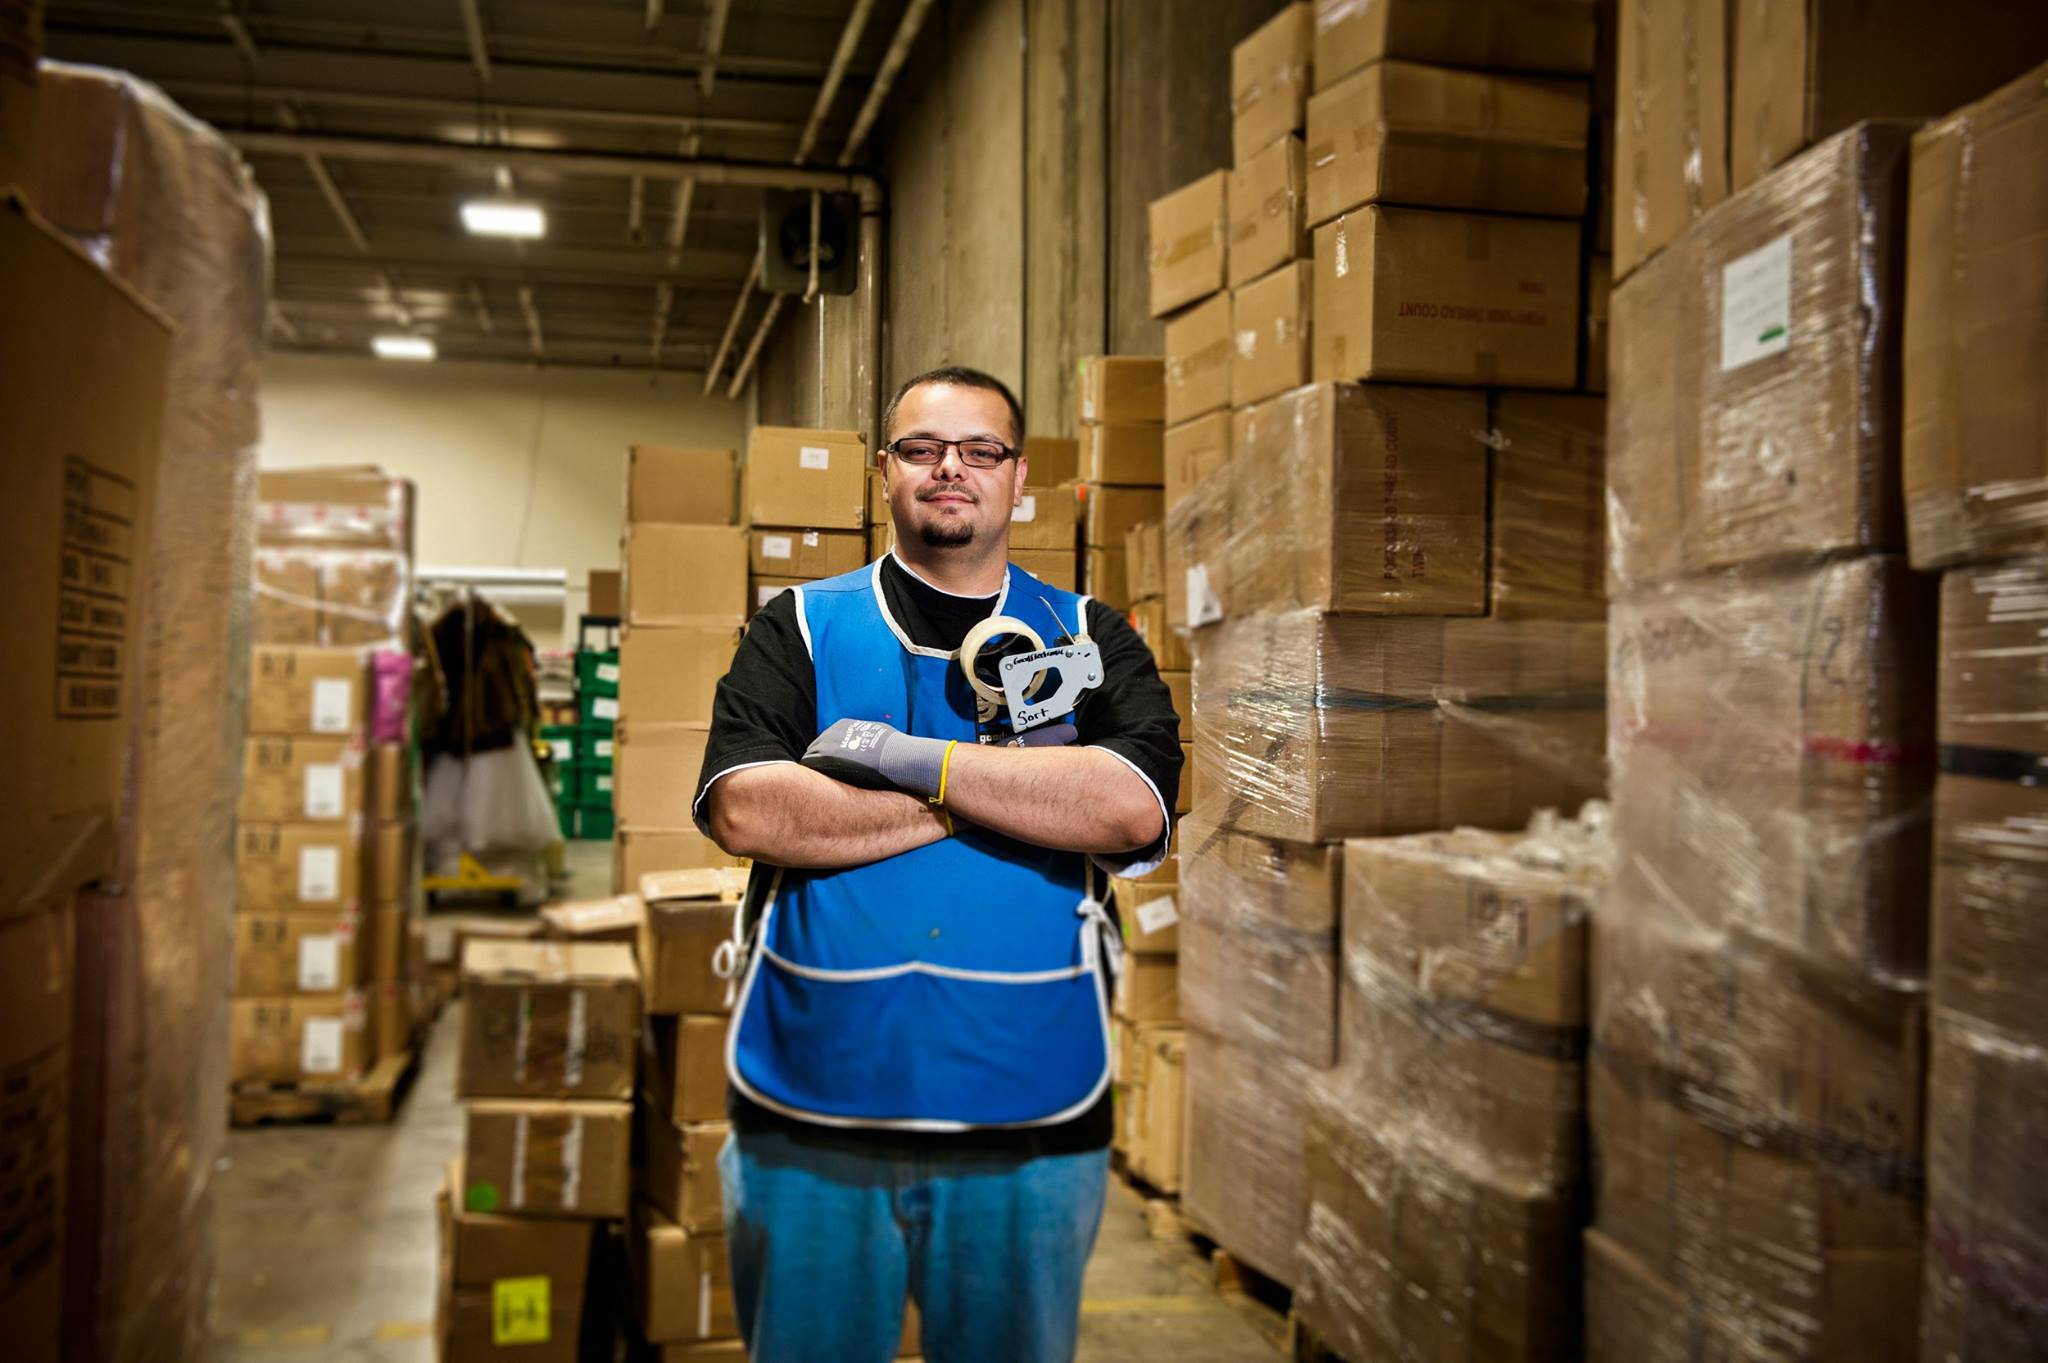 Warehouse worker posing